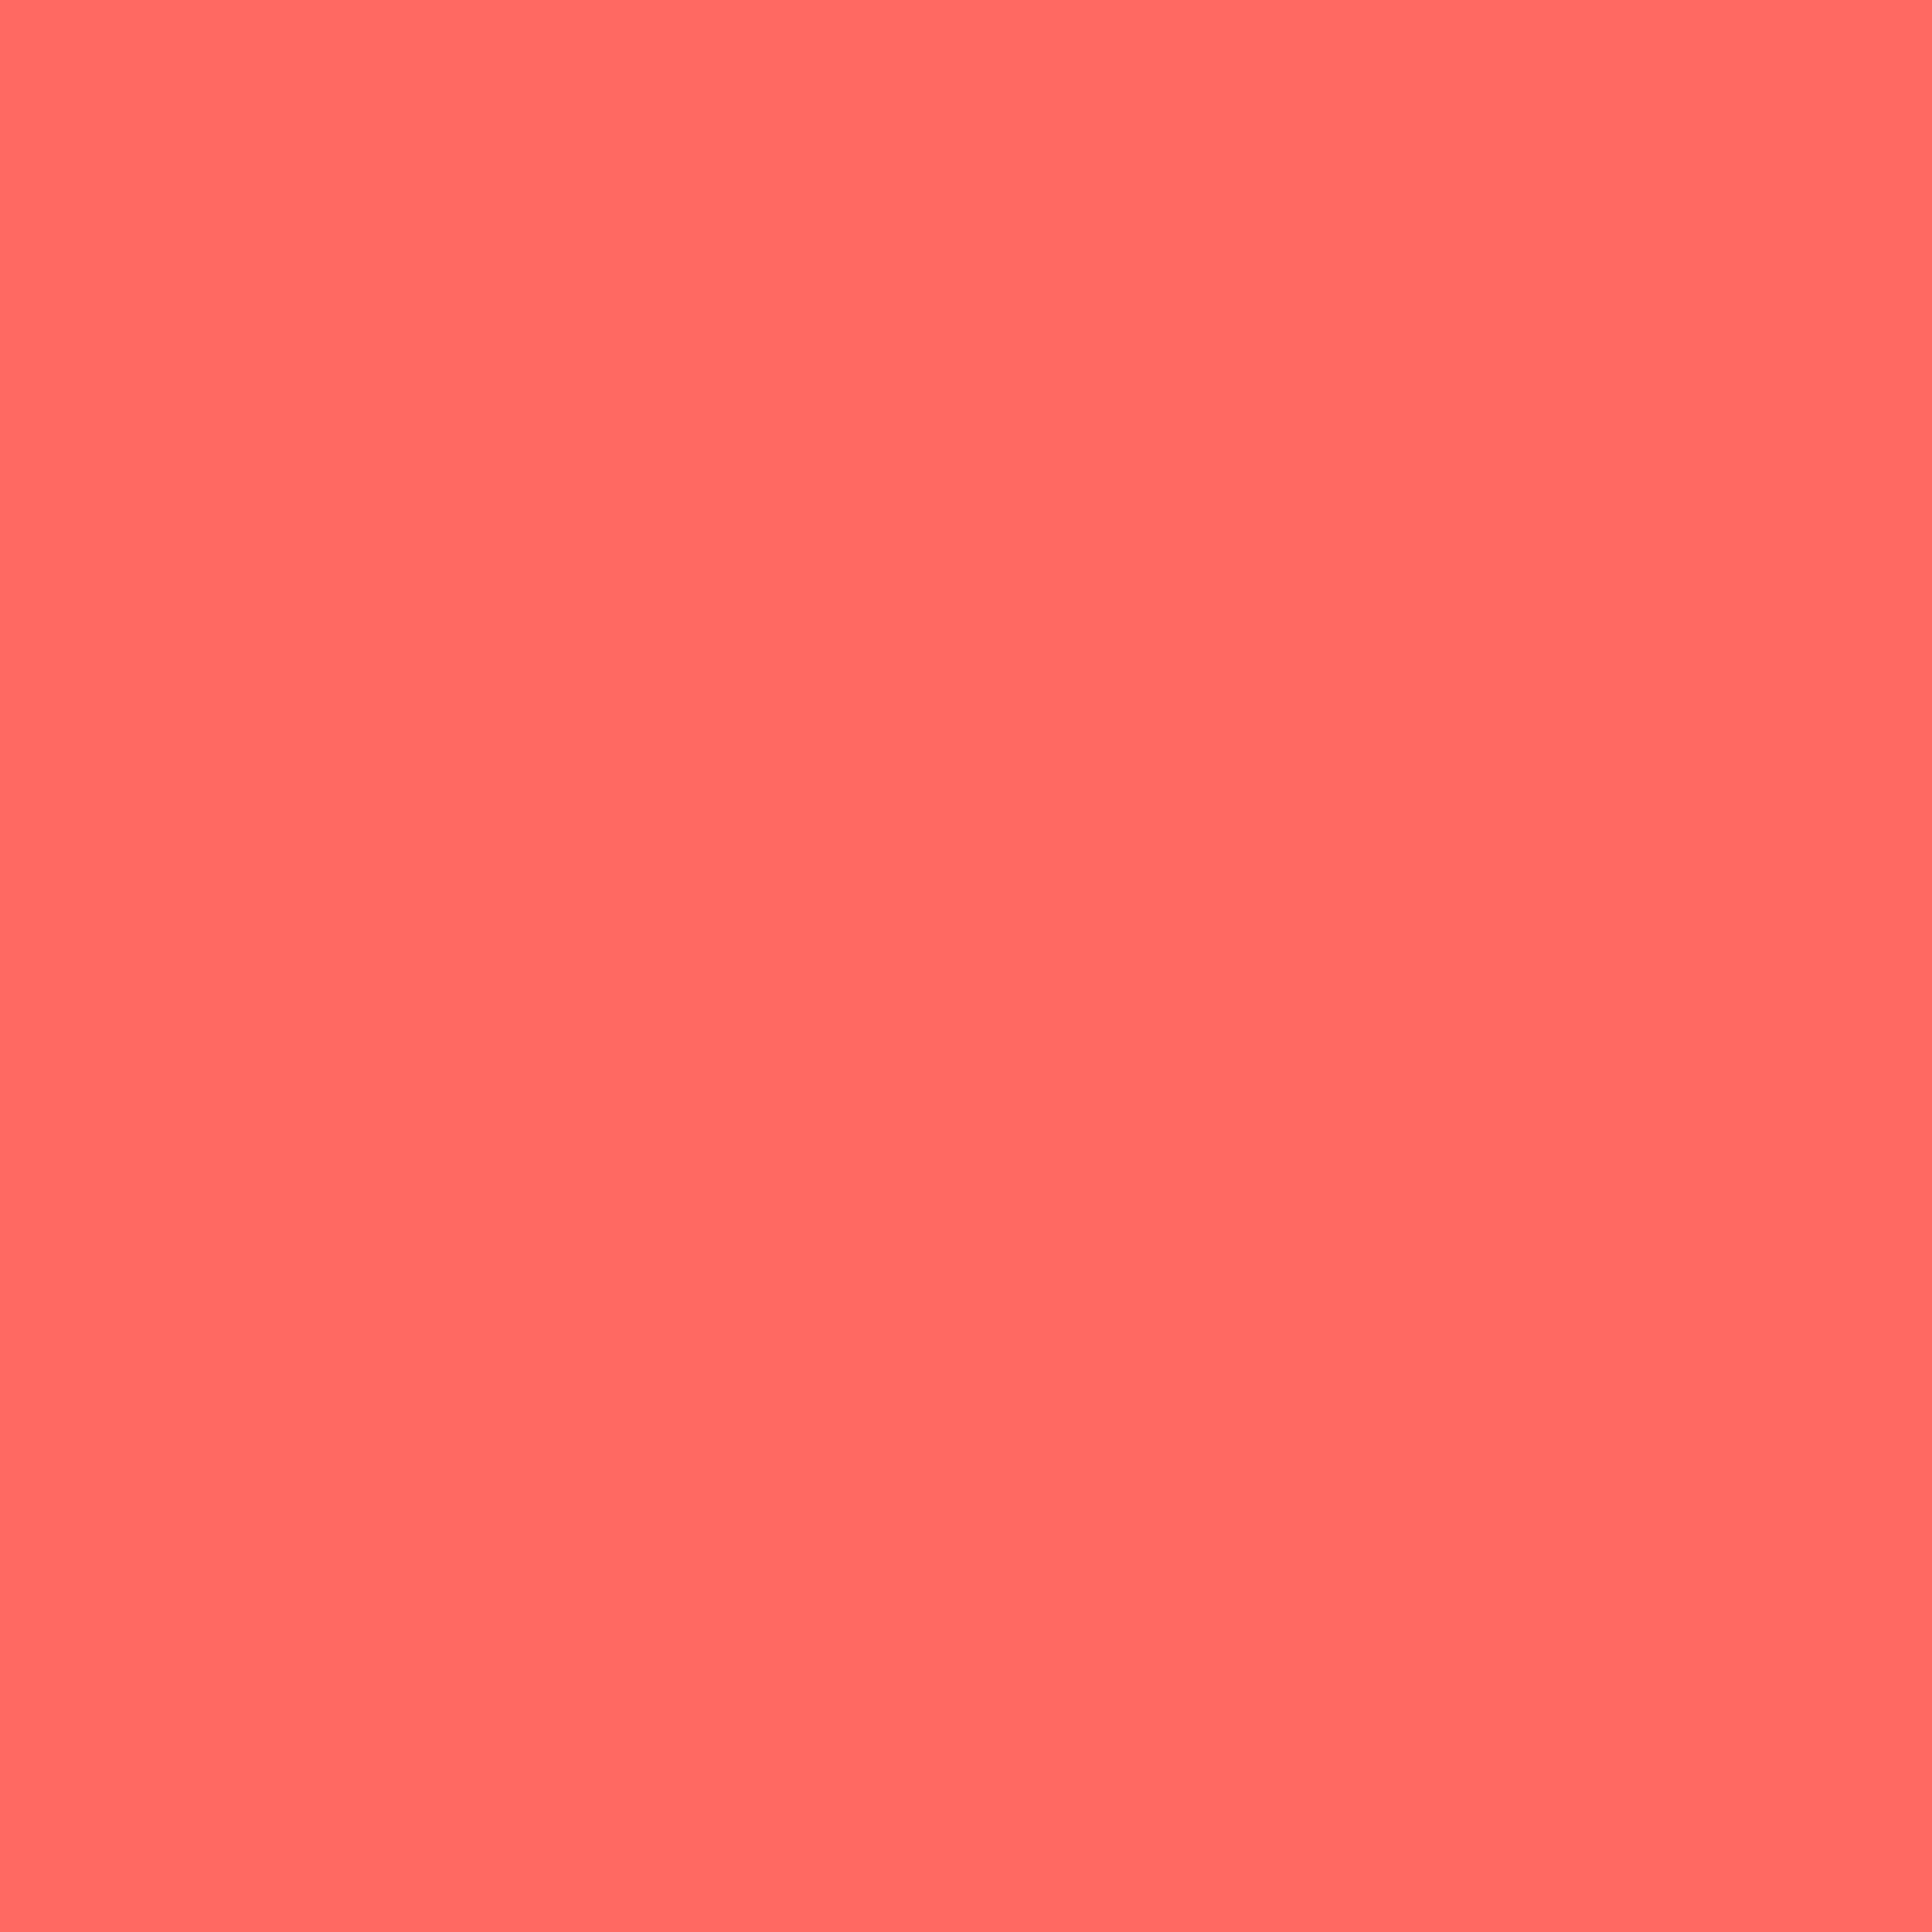 2732x2732 Pastel Red Solid Color Background